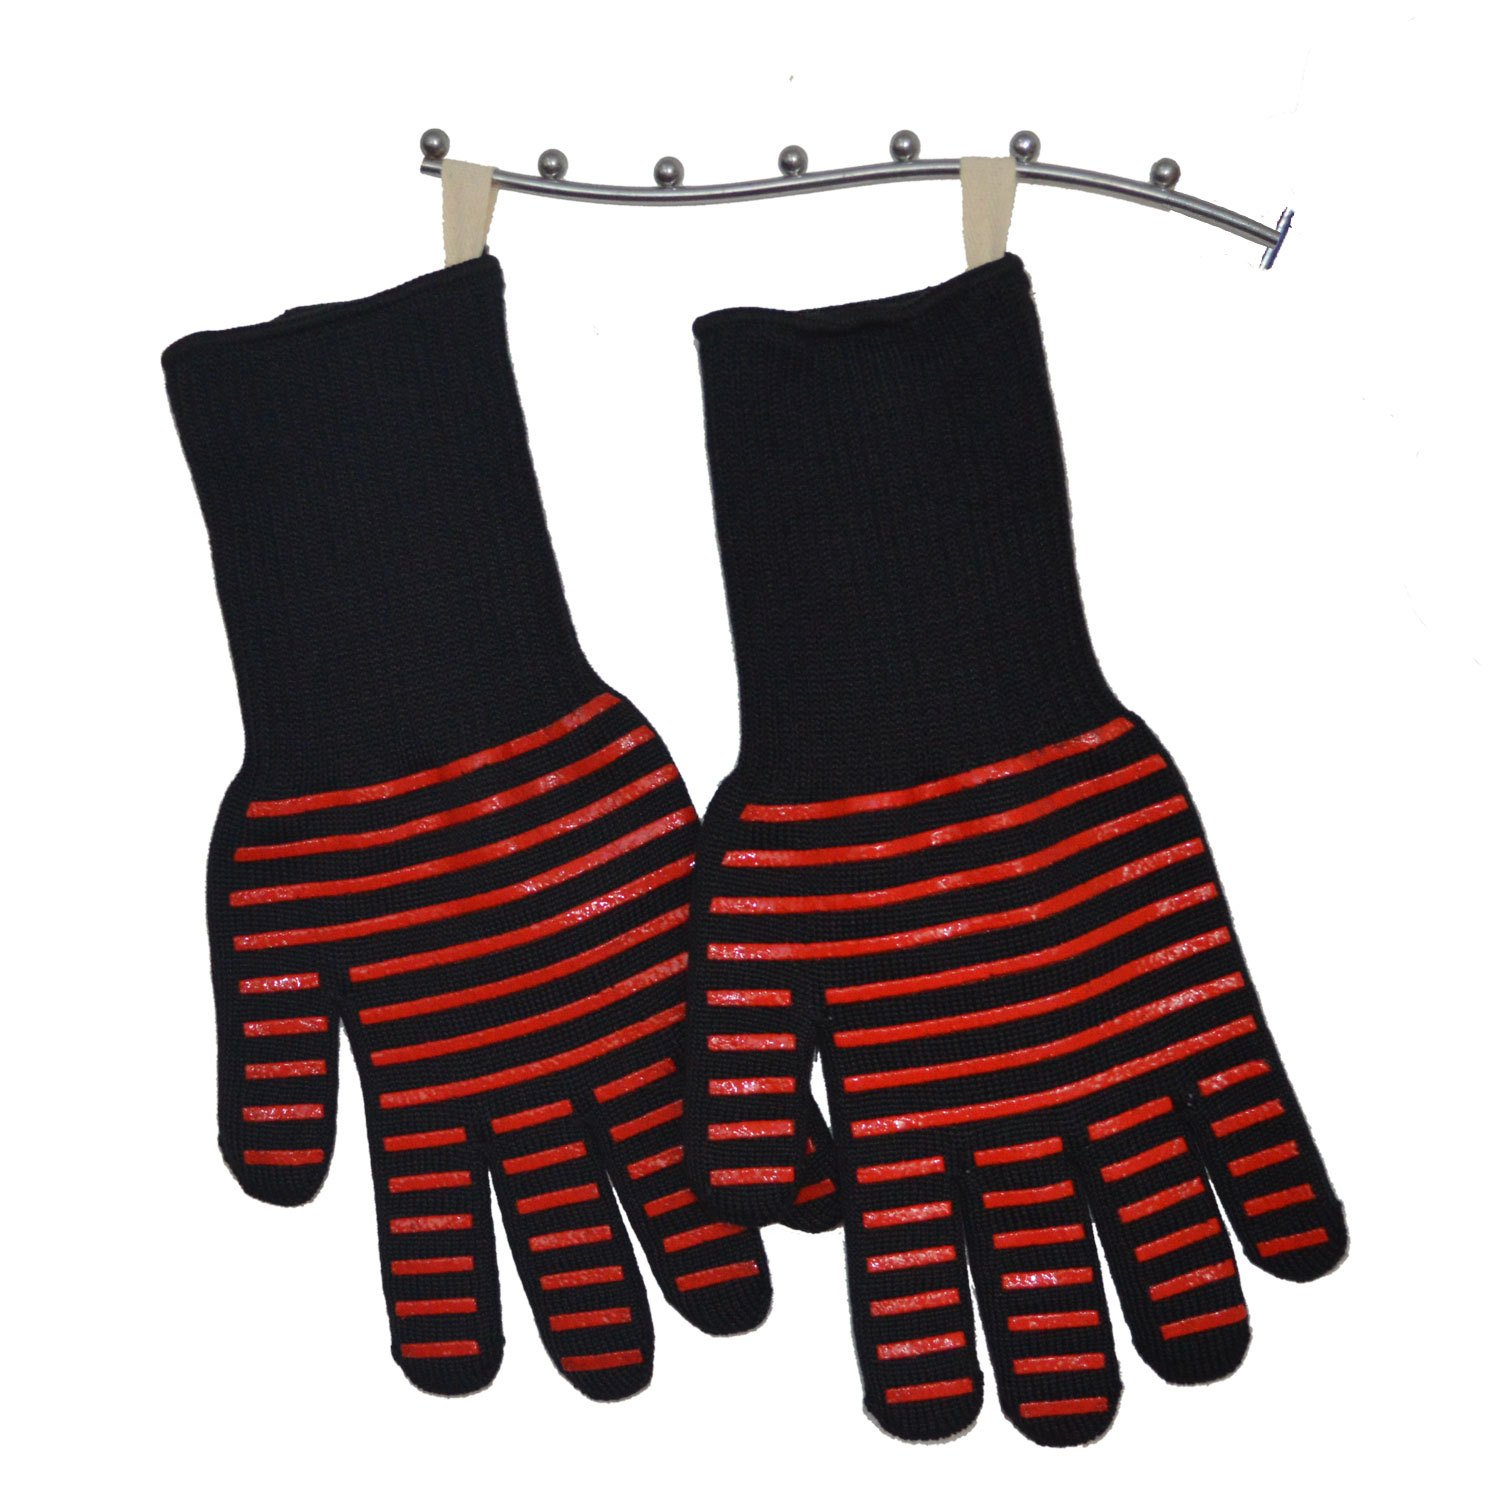 BBQ Gloves Grill Gloves Kitchen Oven Mitts 932°F Extreme Heat Resistant Gloves 14'' Long Cut Resistant and Forearm Protection baking & Grilling Gloves (1 Pair) by ITESTOO (Image #3)